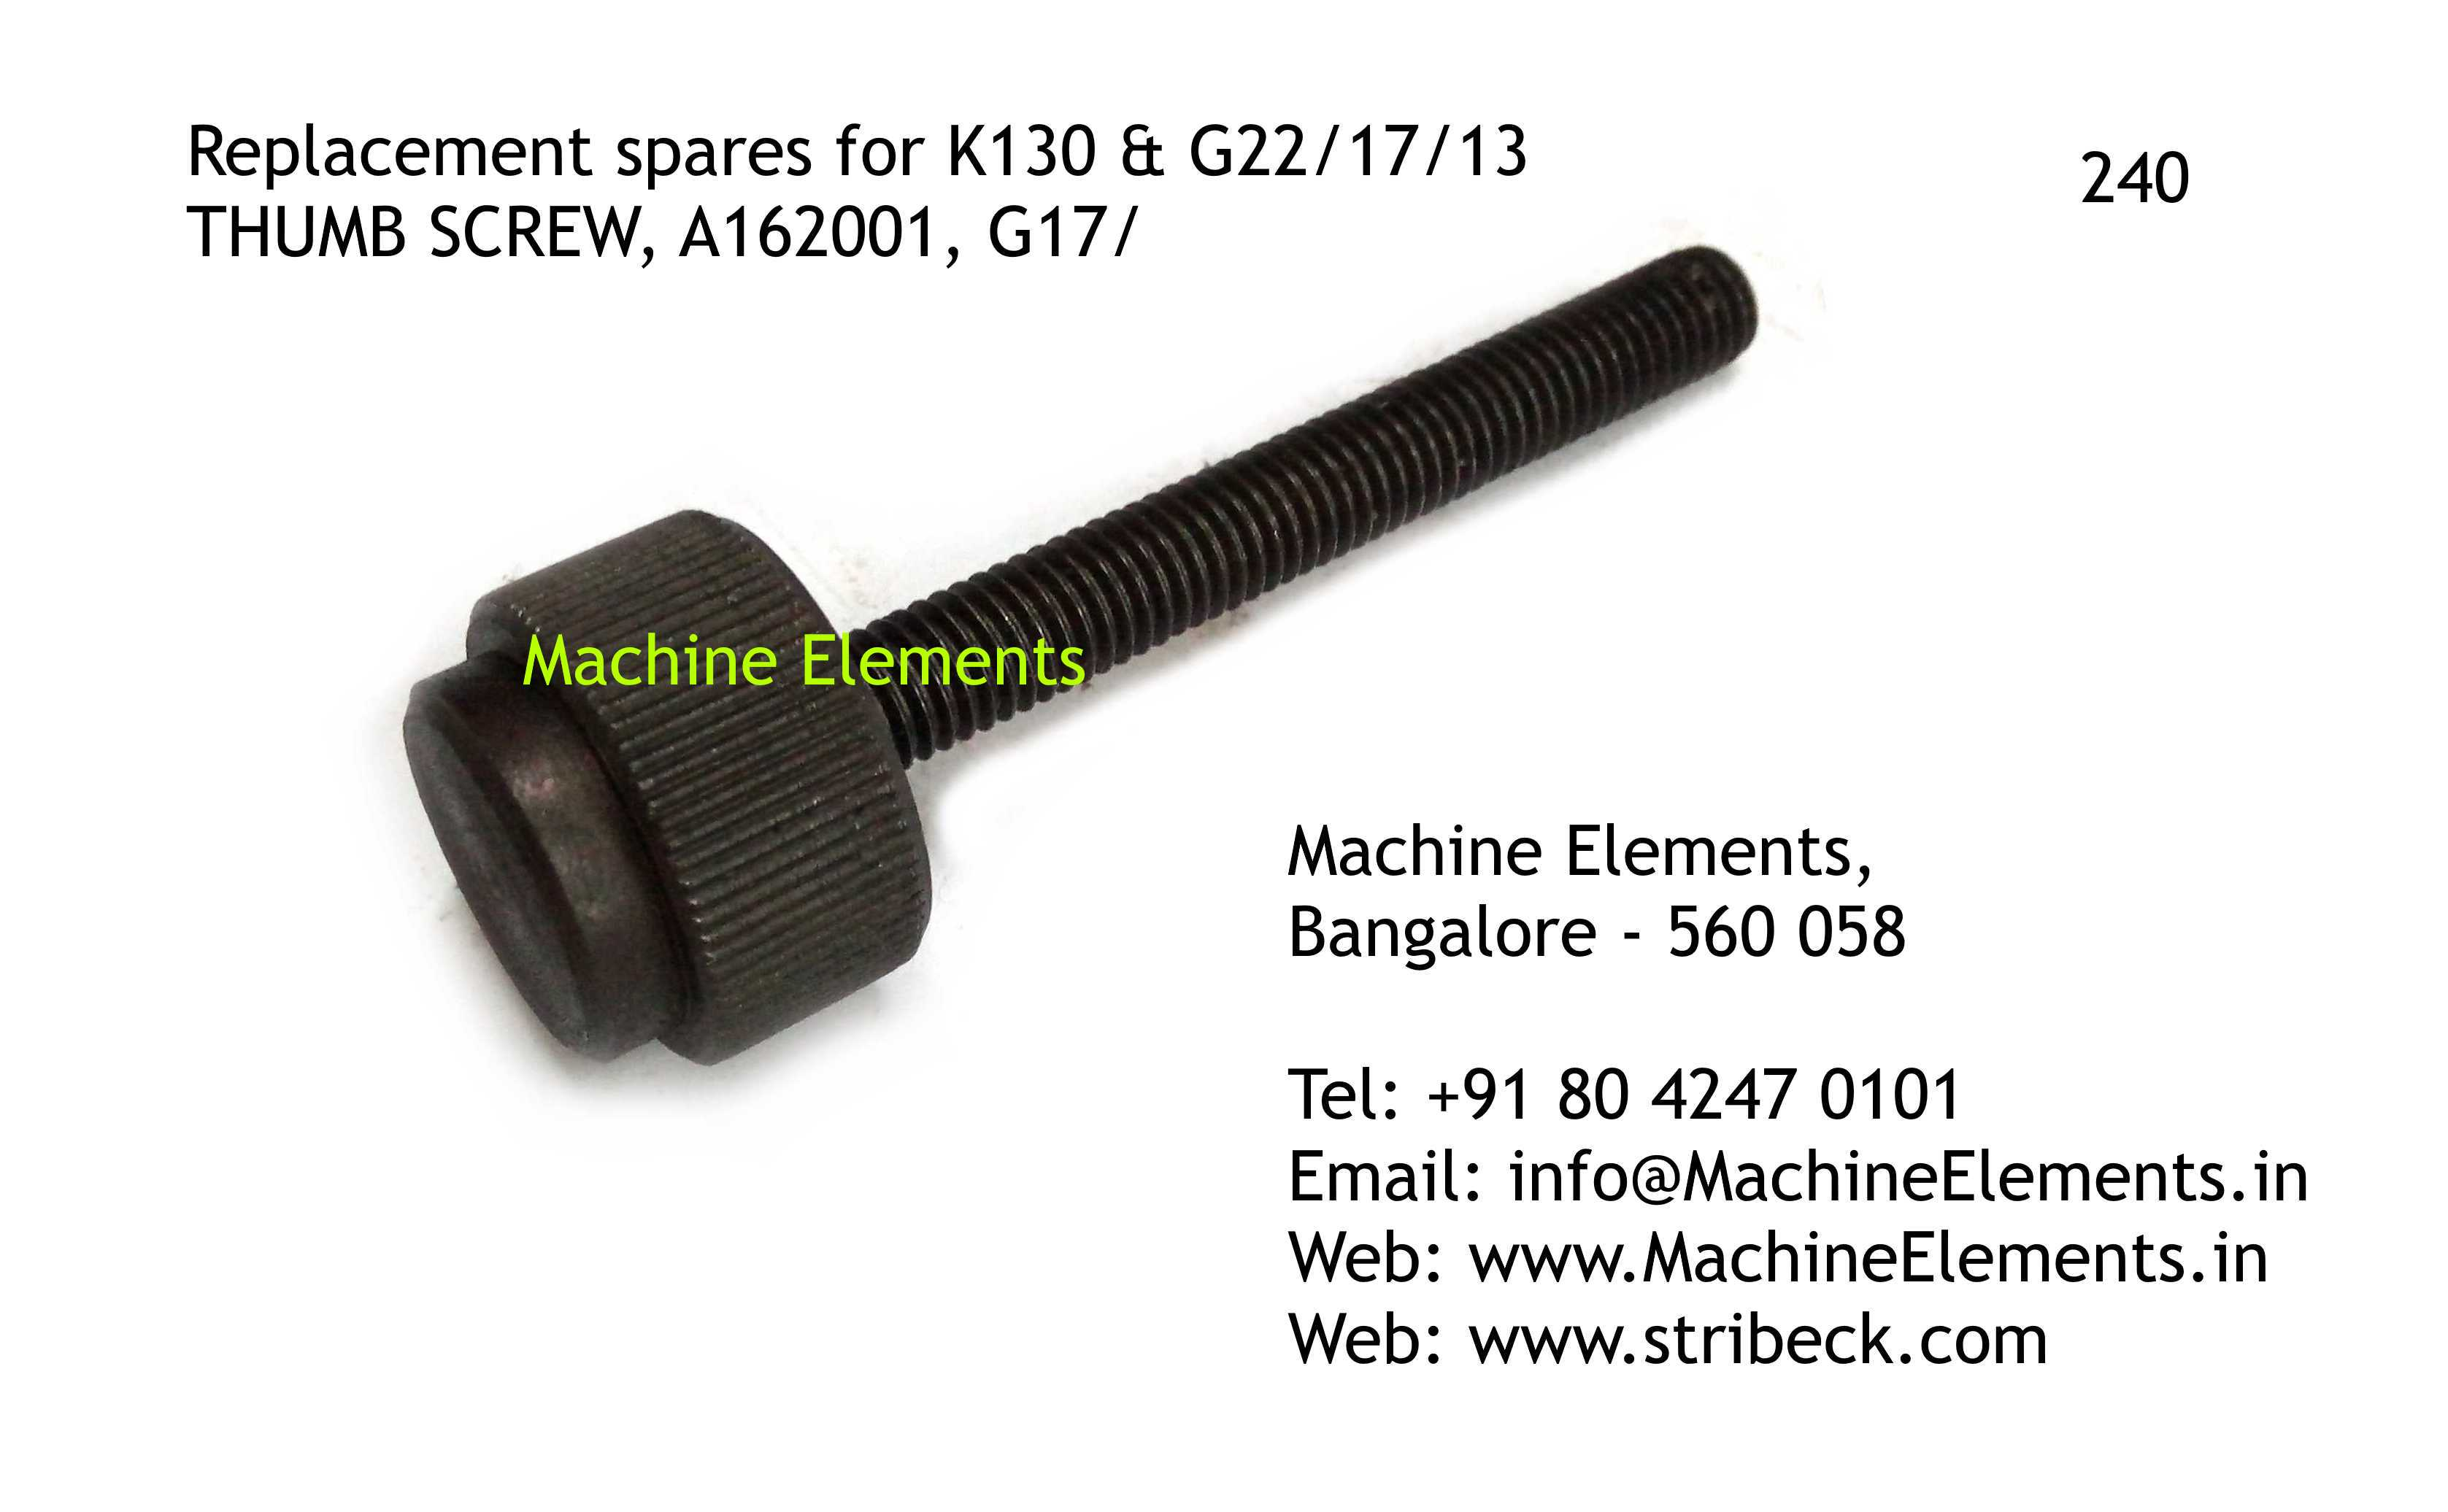 THUM SCREW, A162001, G17